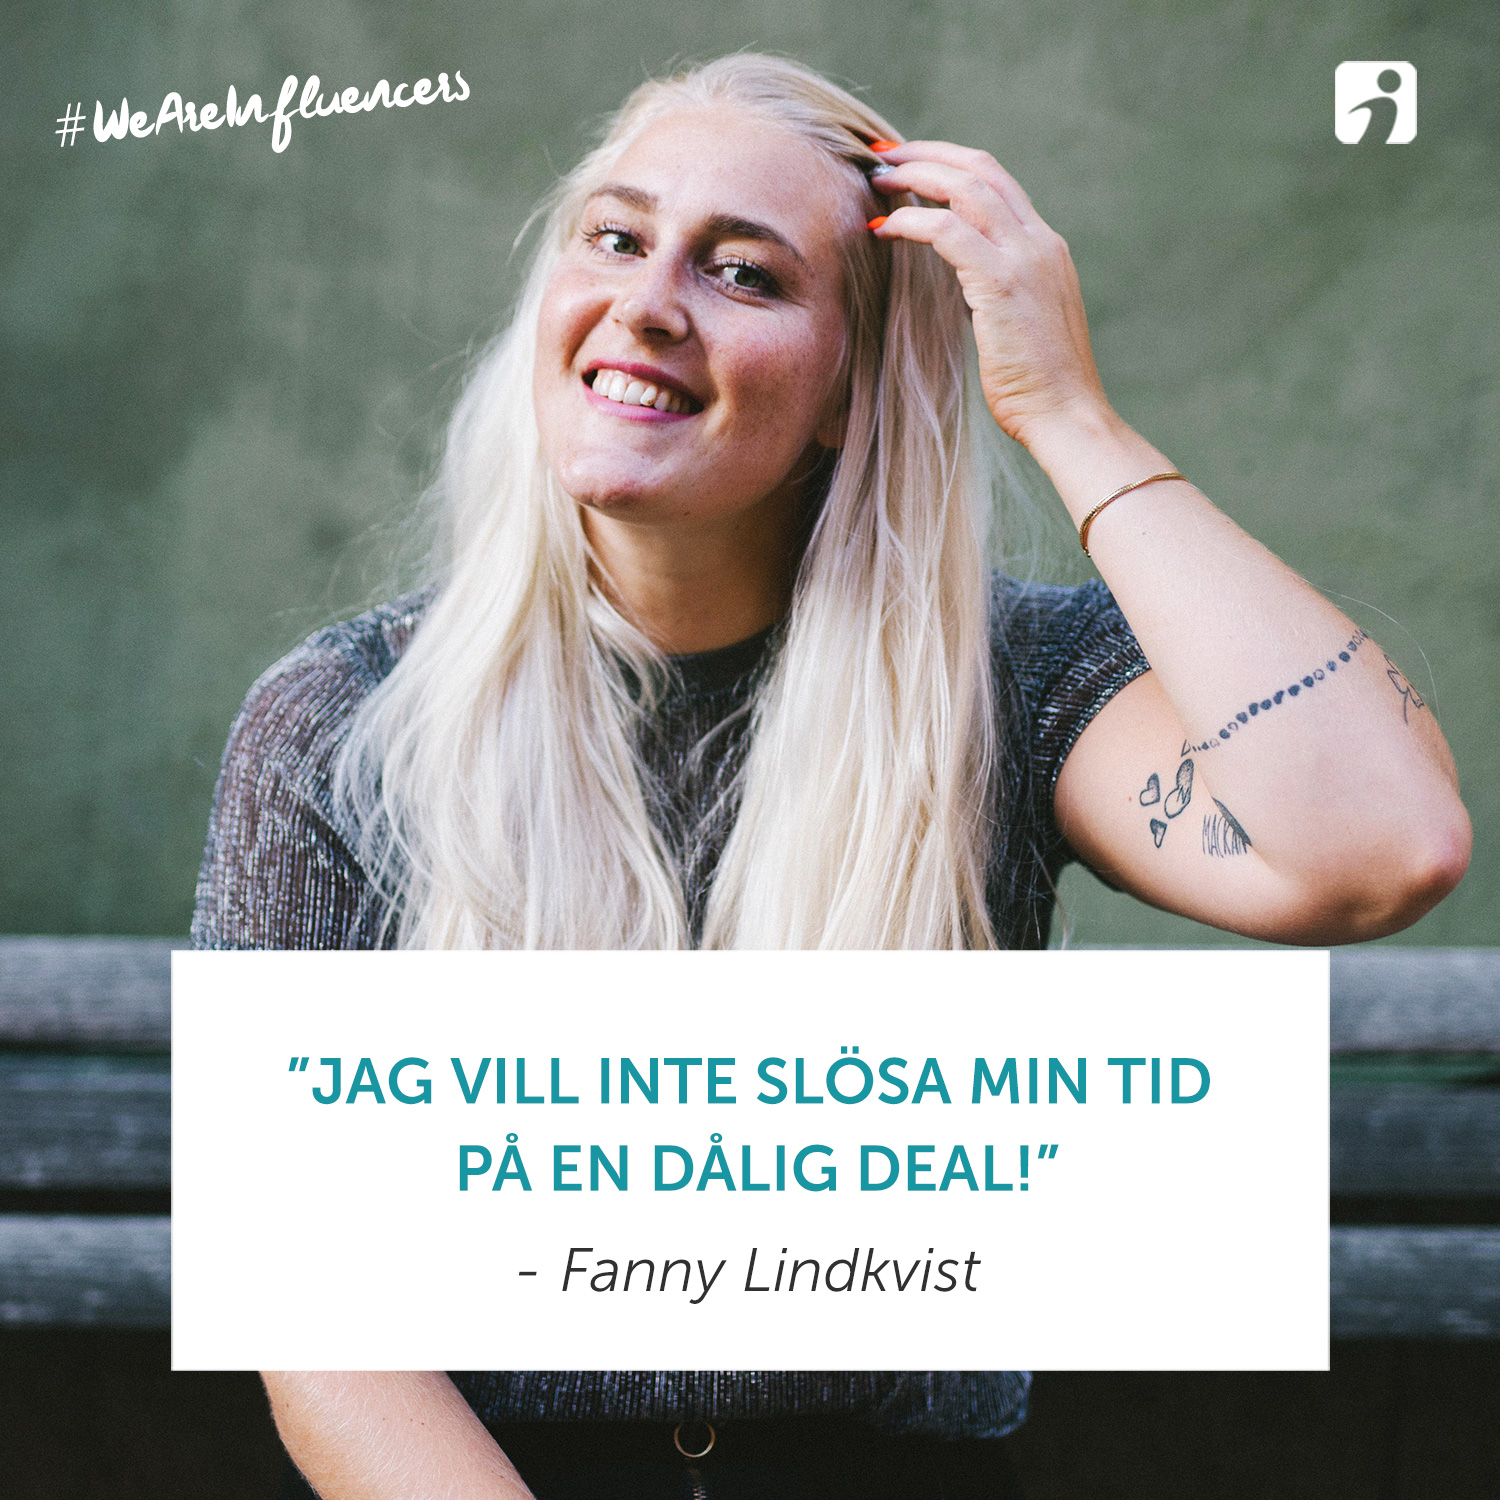 We Are Influencers - Fanny Lindkvist